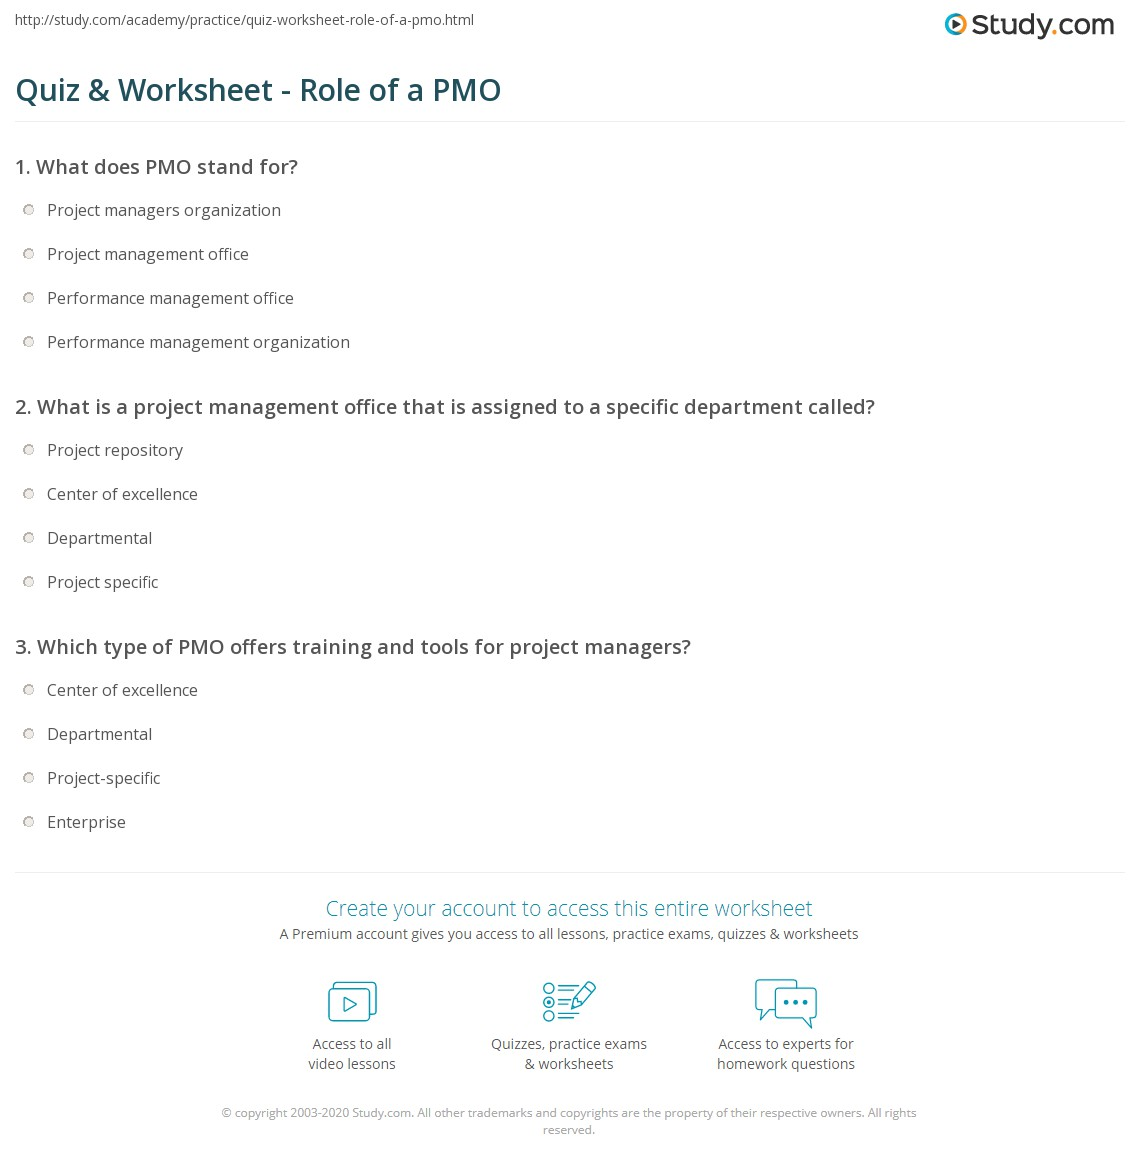 Quiz worksheet role of a pmo study print what is a project management office definition roles worksheet xflitez Image collections